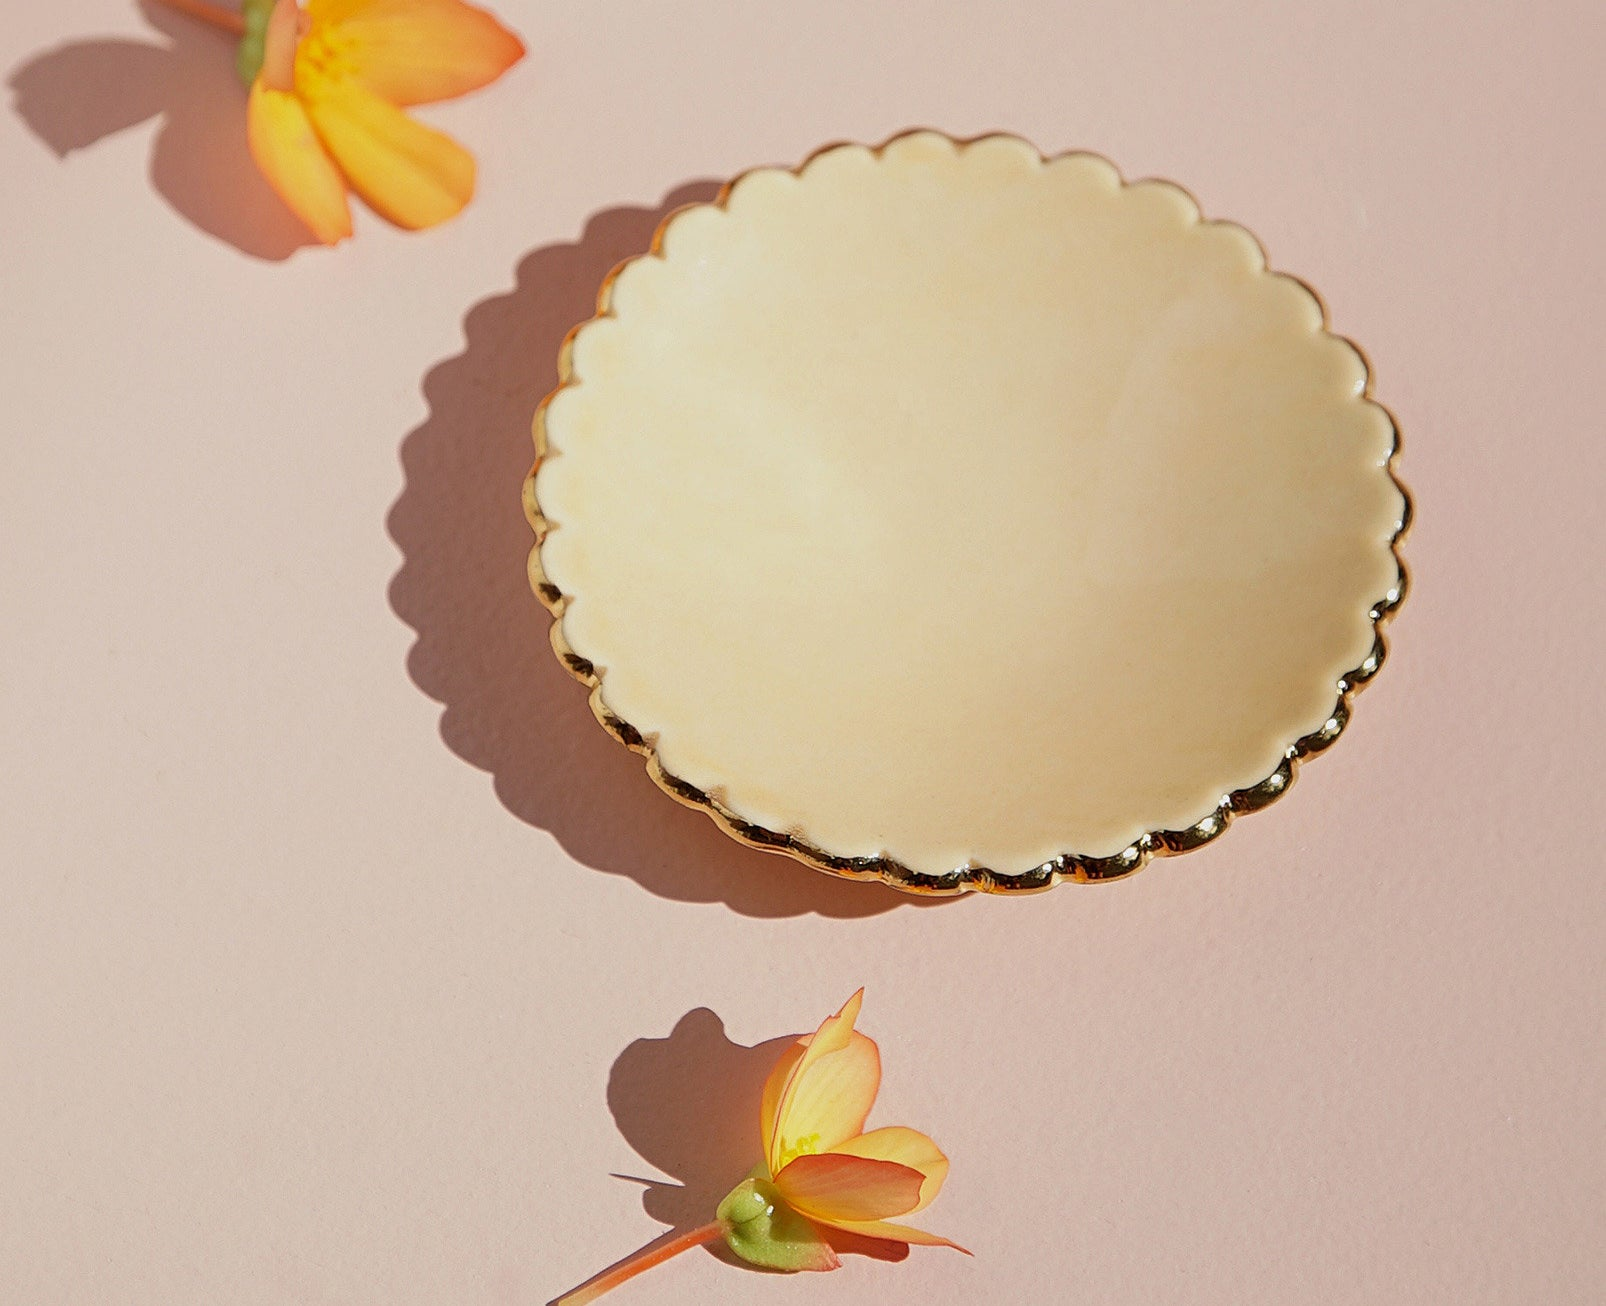 A small ceramic dish with scalloped edges